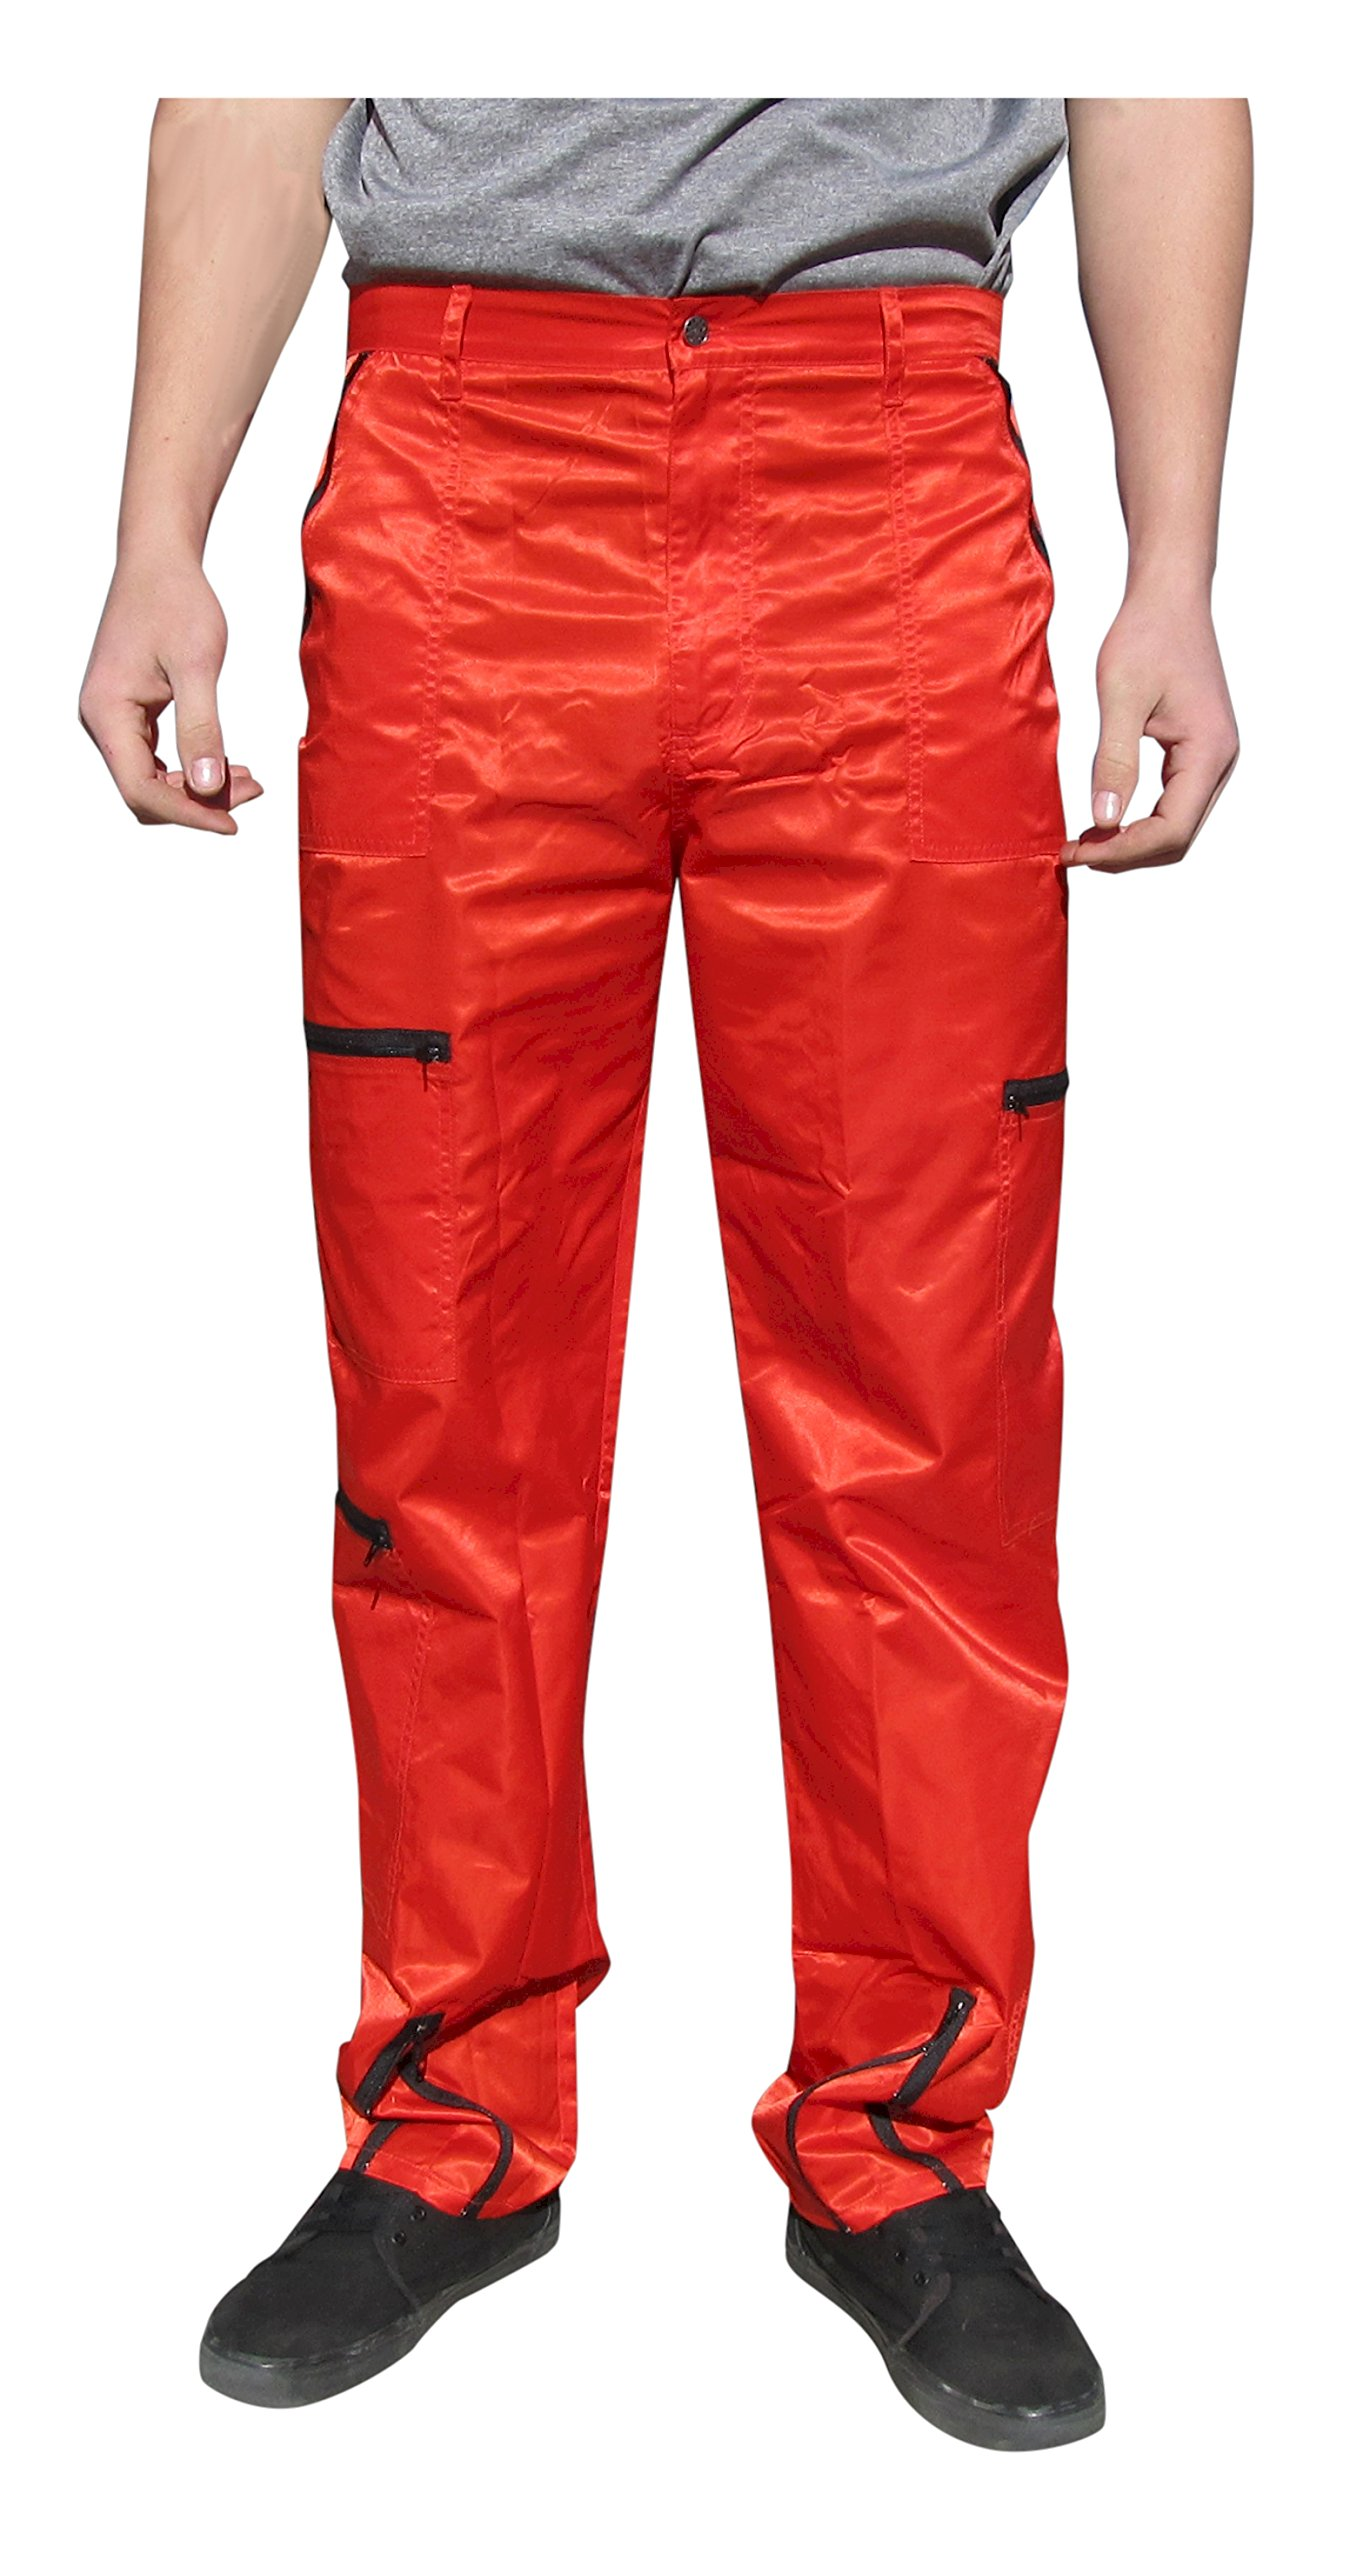 Panno D'Or Shiny Nylon 80s Parachute Pants (Exactly 36'', Red)